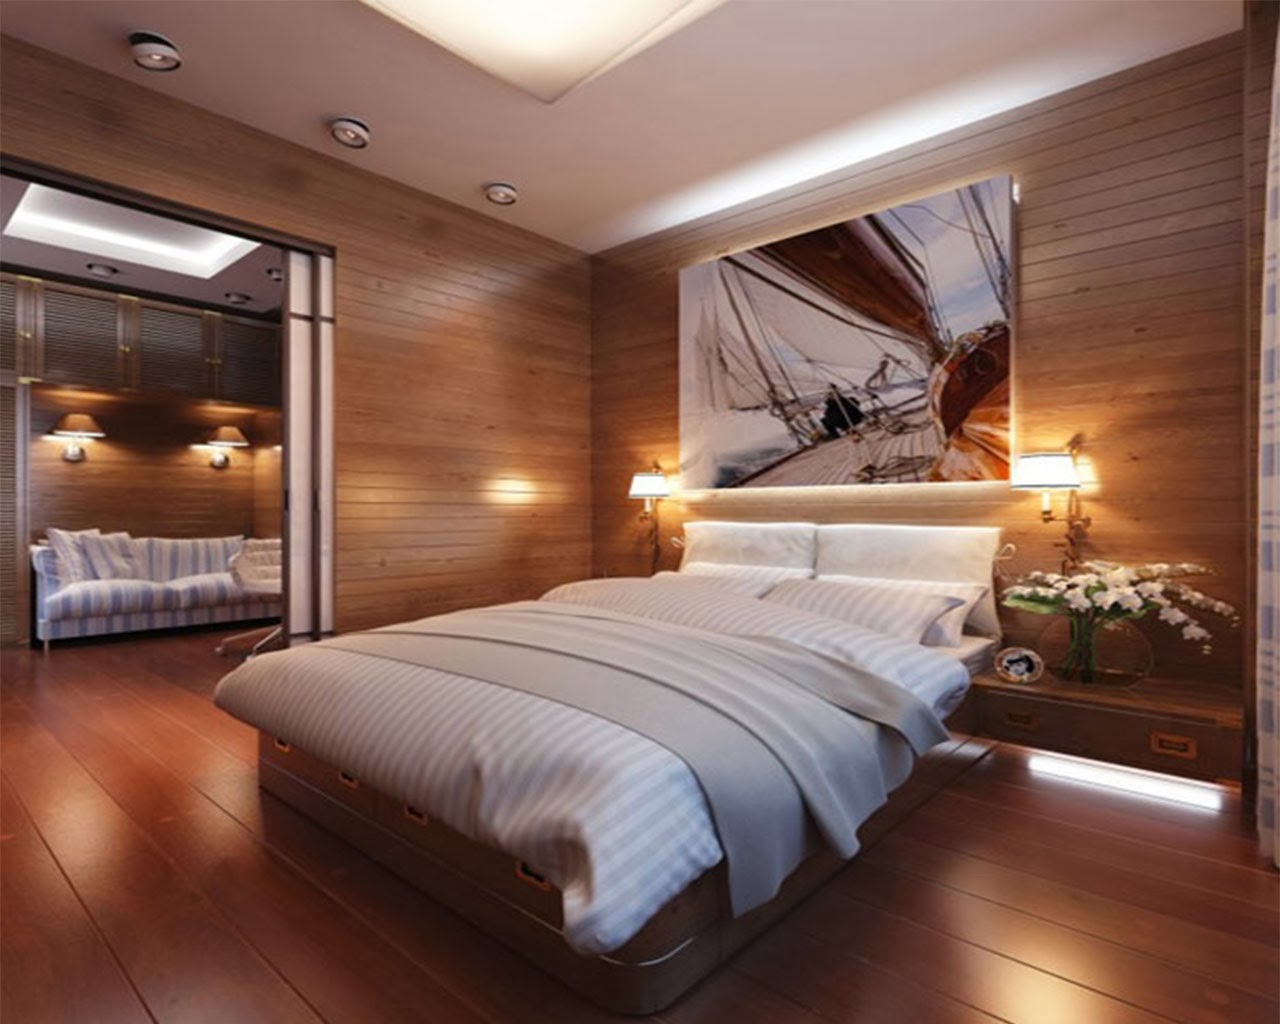 Bedroom Designs 2014 - Moi Tres Jolie